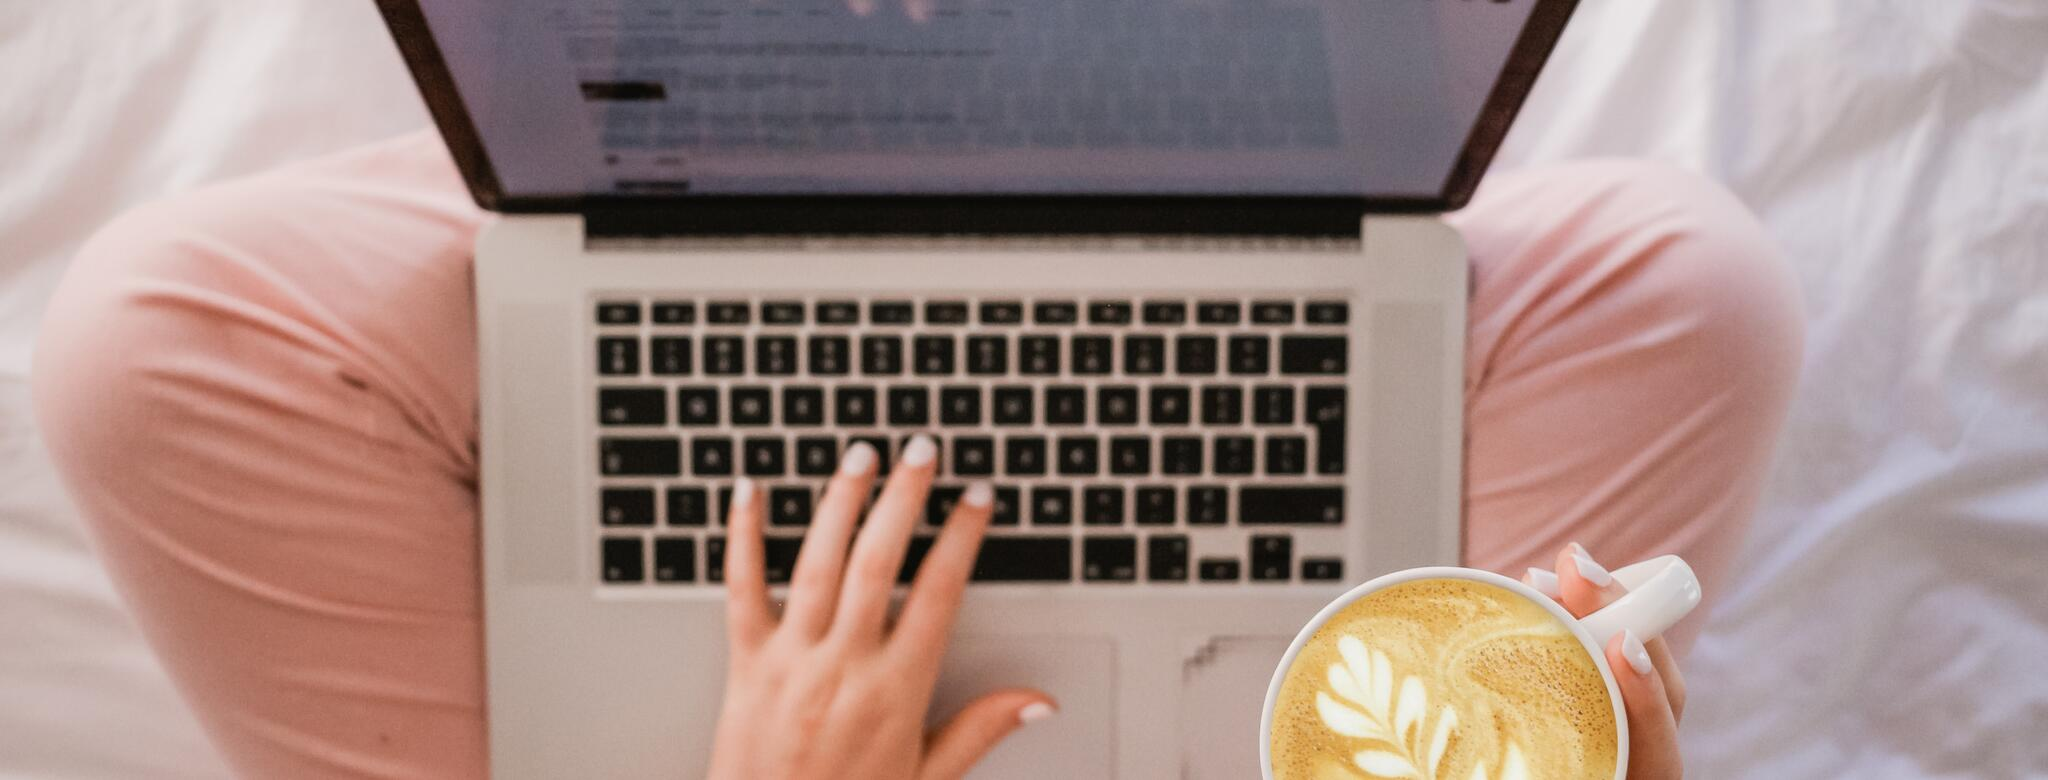 woman on laptop with latte